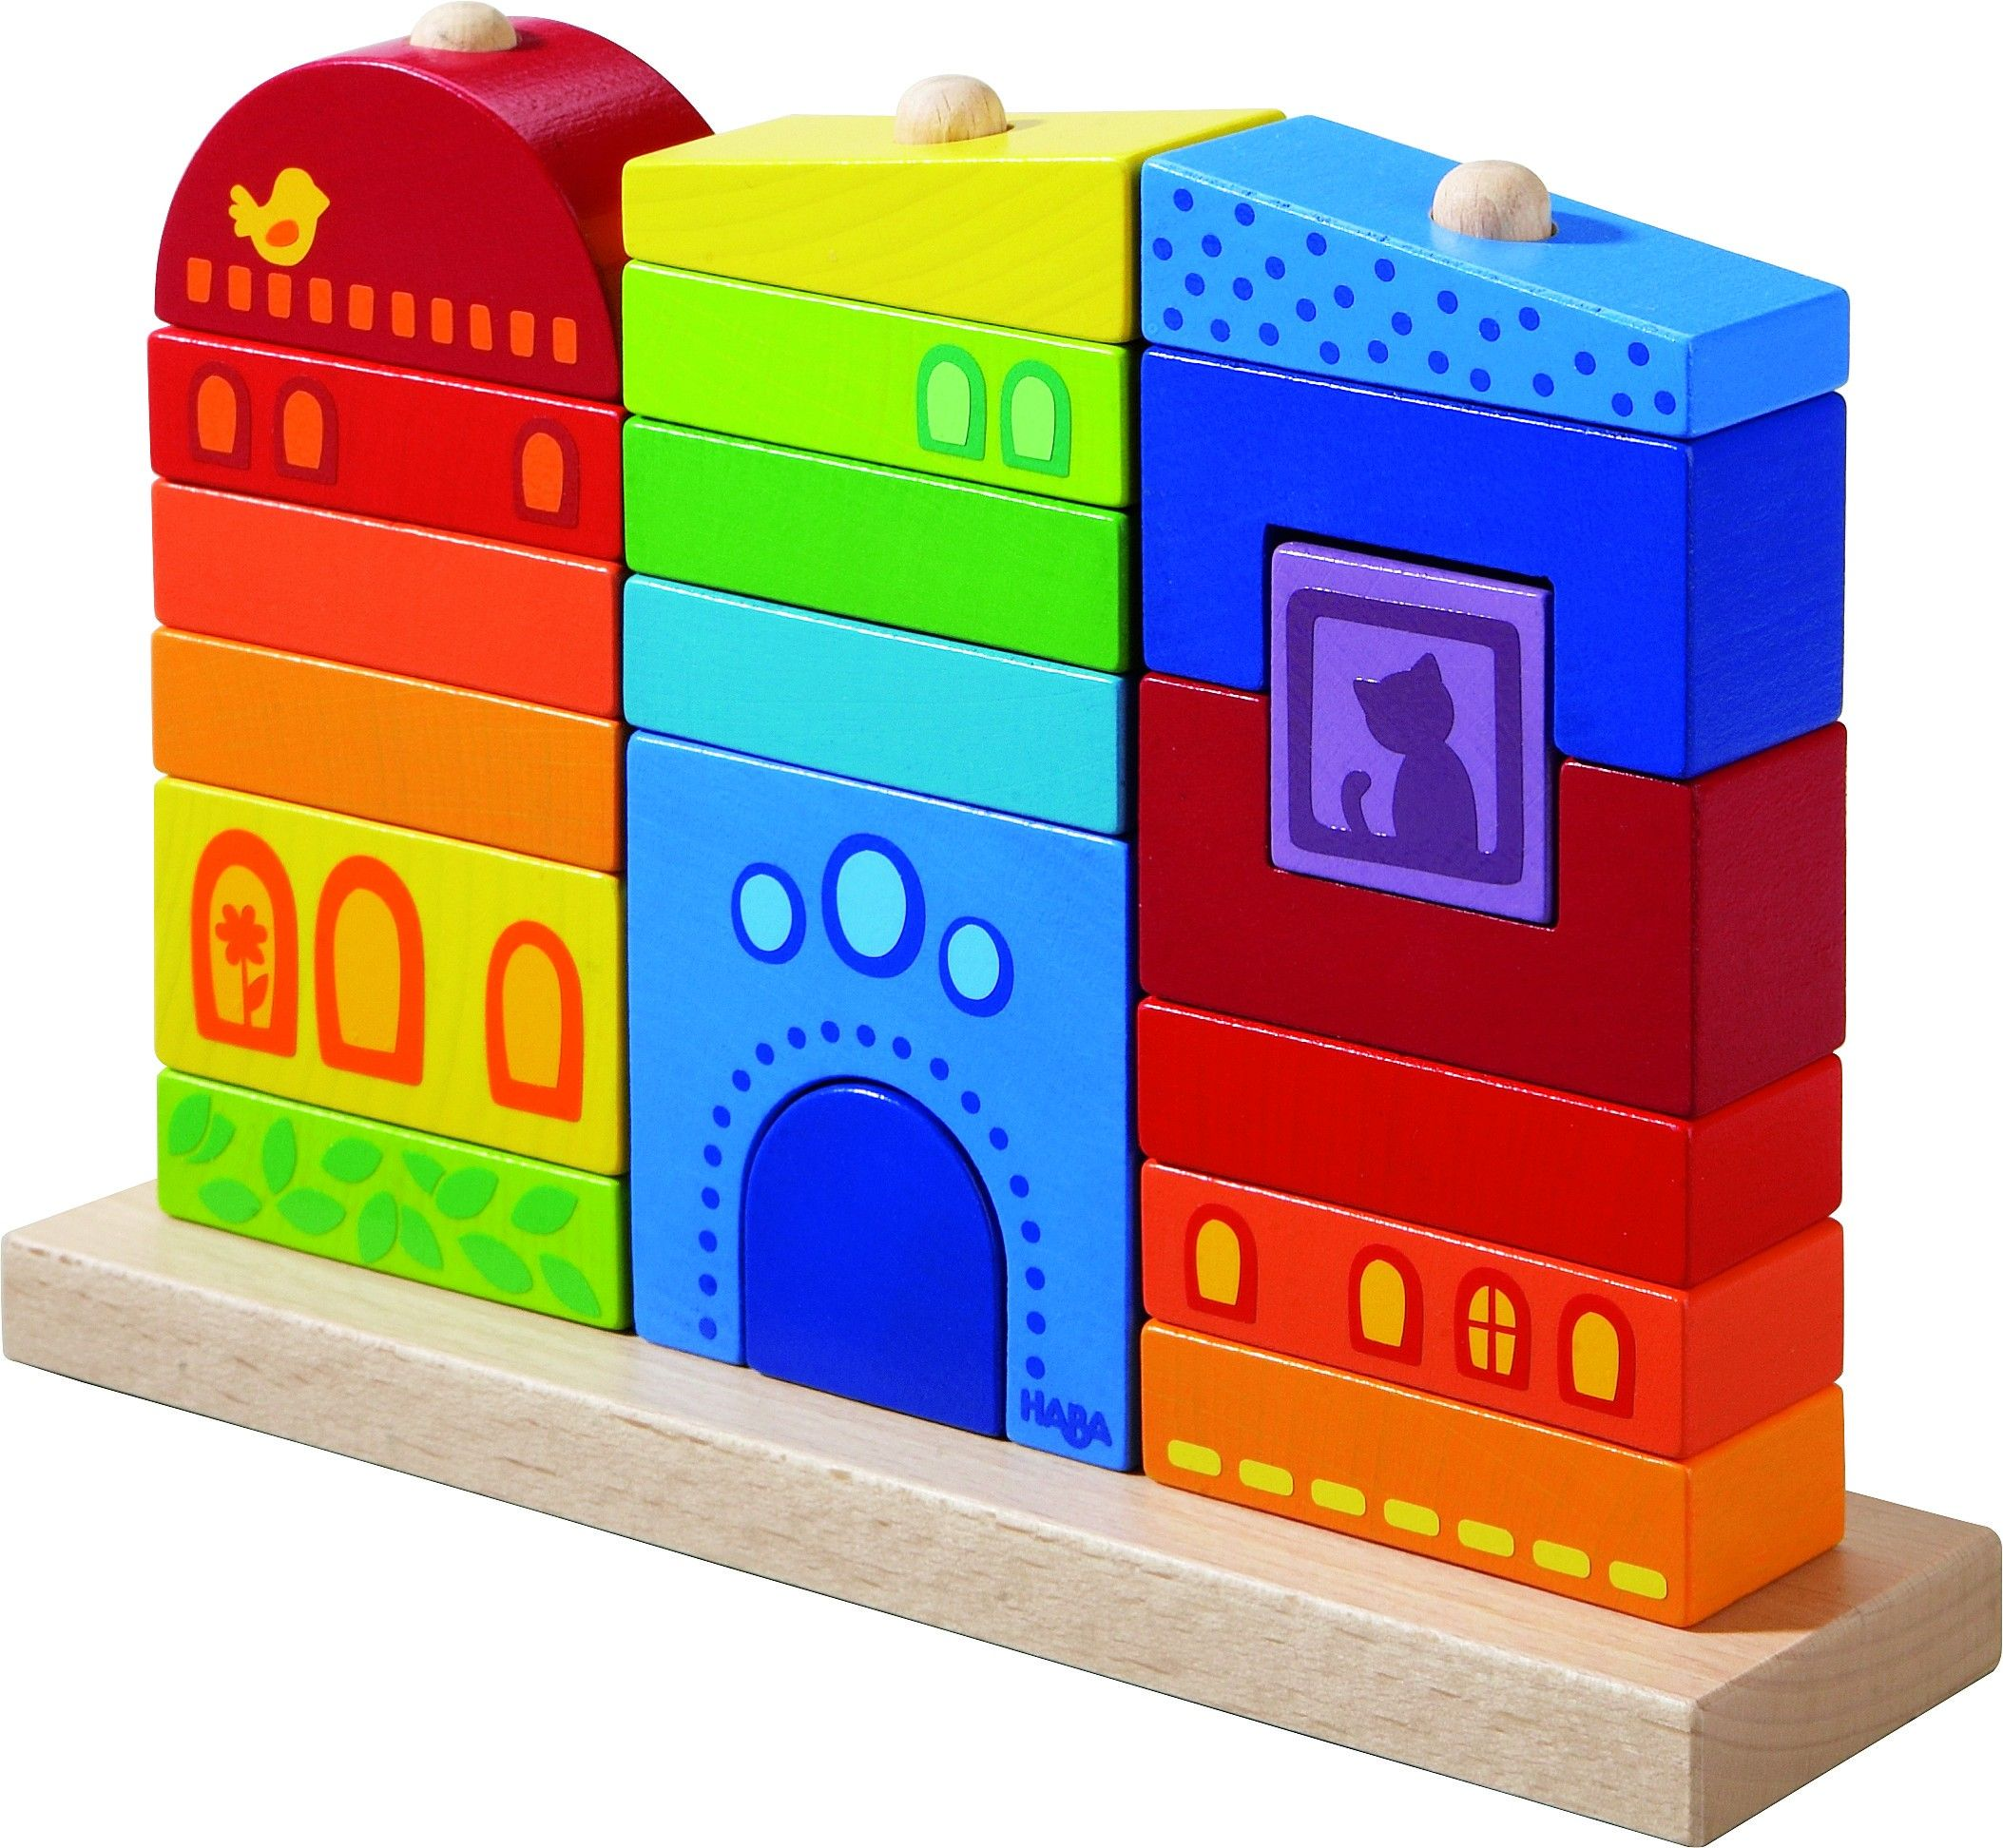 Cute stacking game Great for developing fine motor skills Haba